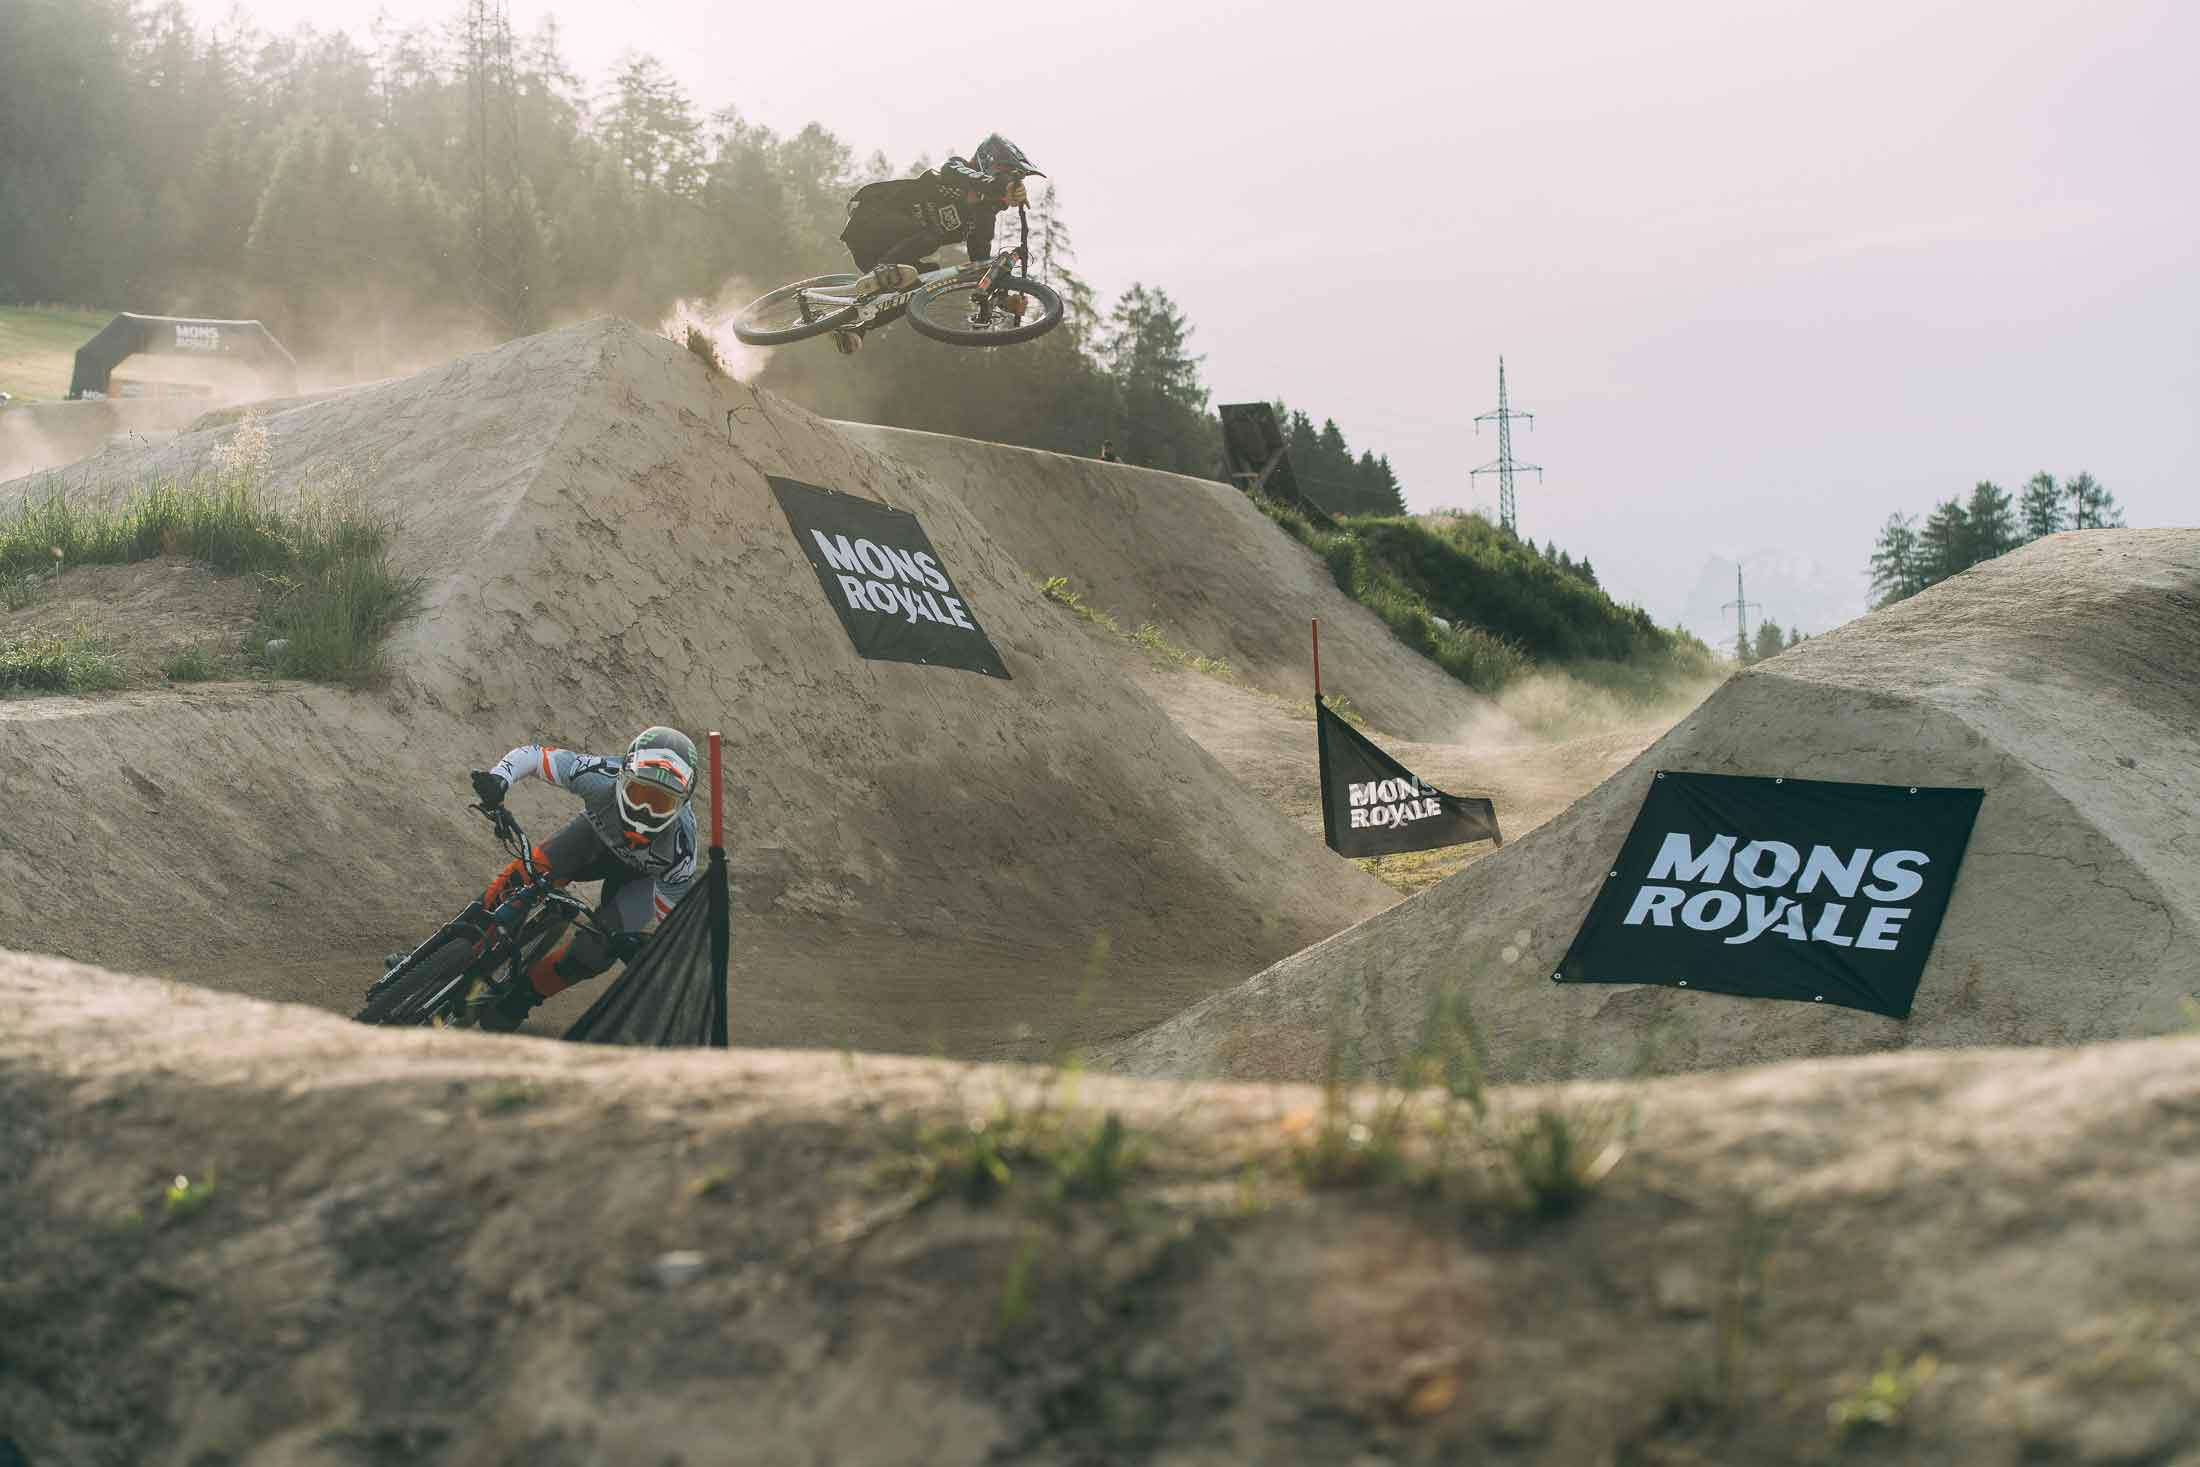 Competitors at the Mons Royale Speed and Style at Crankworx Innsbruck